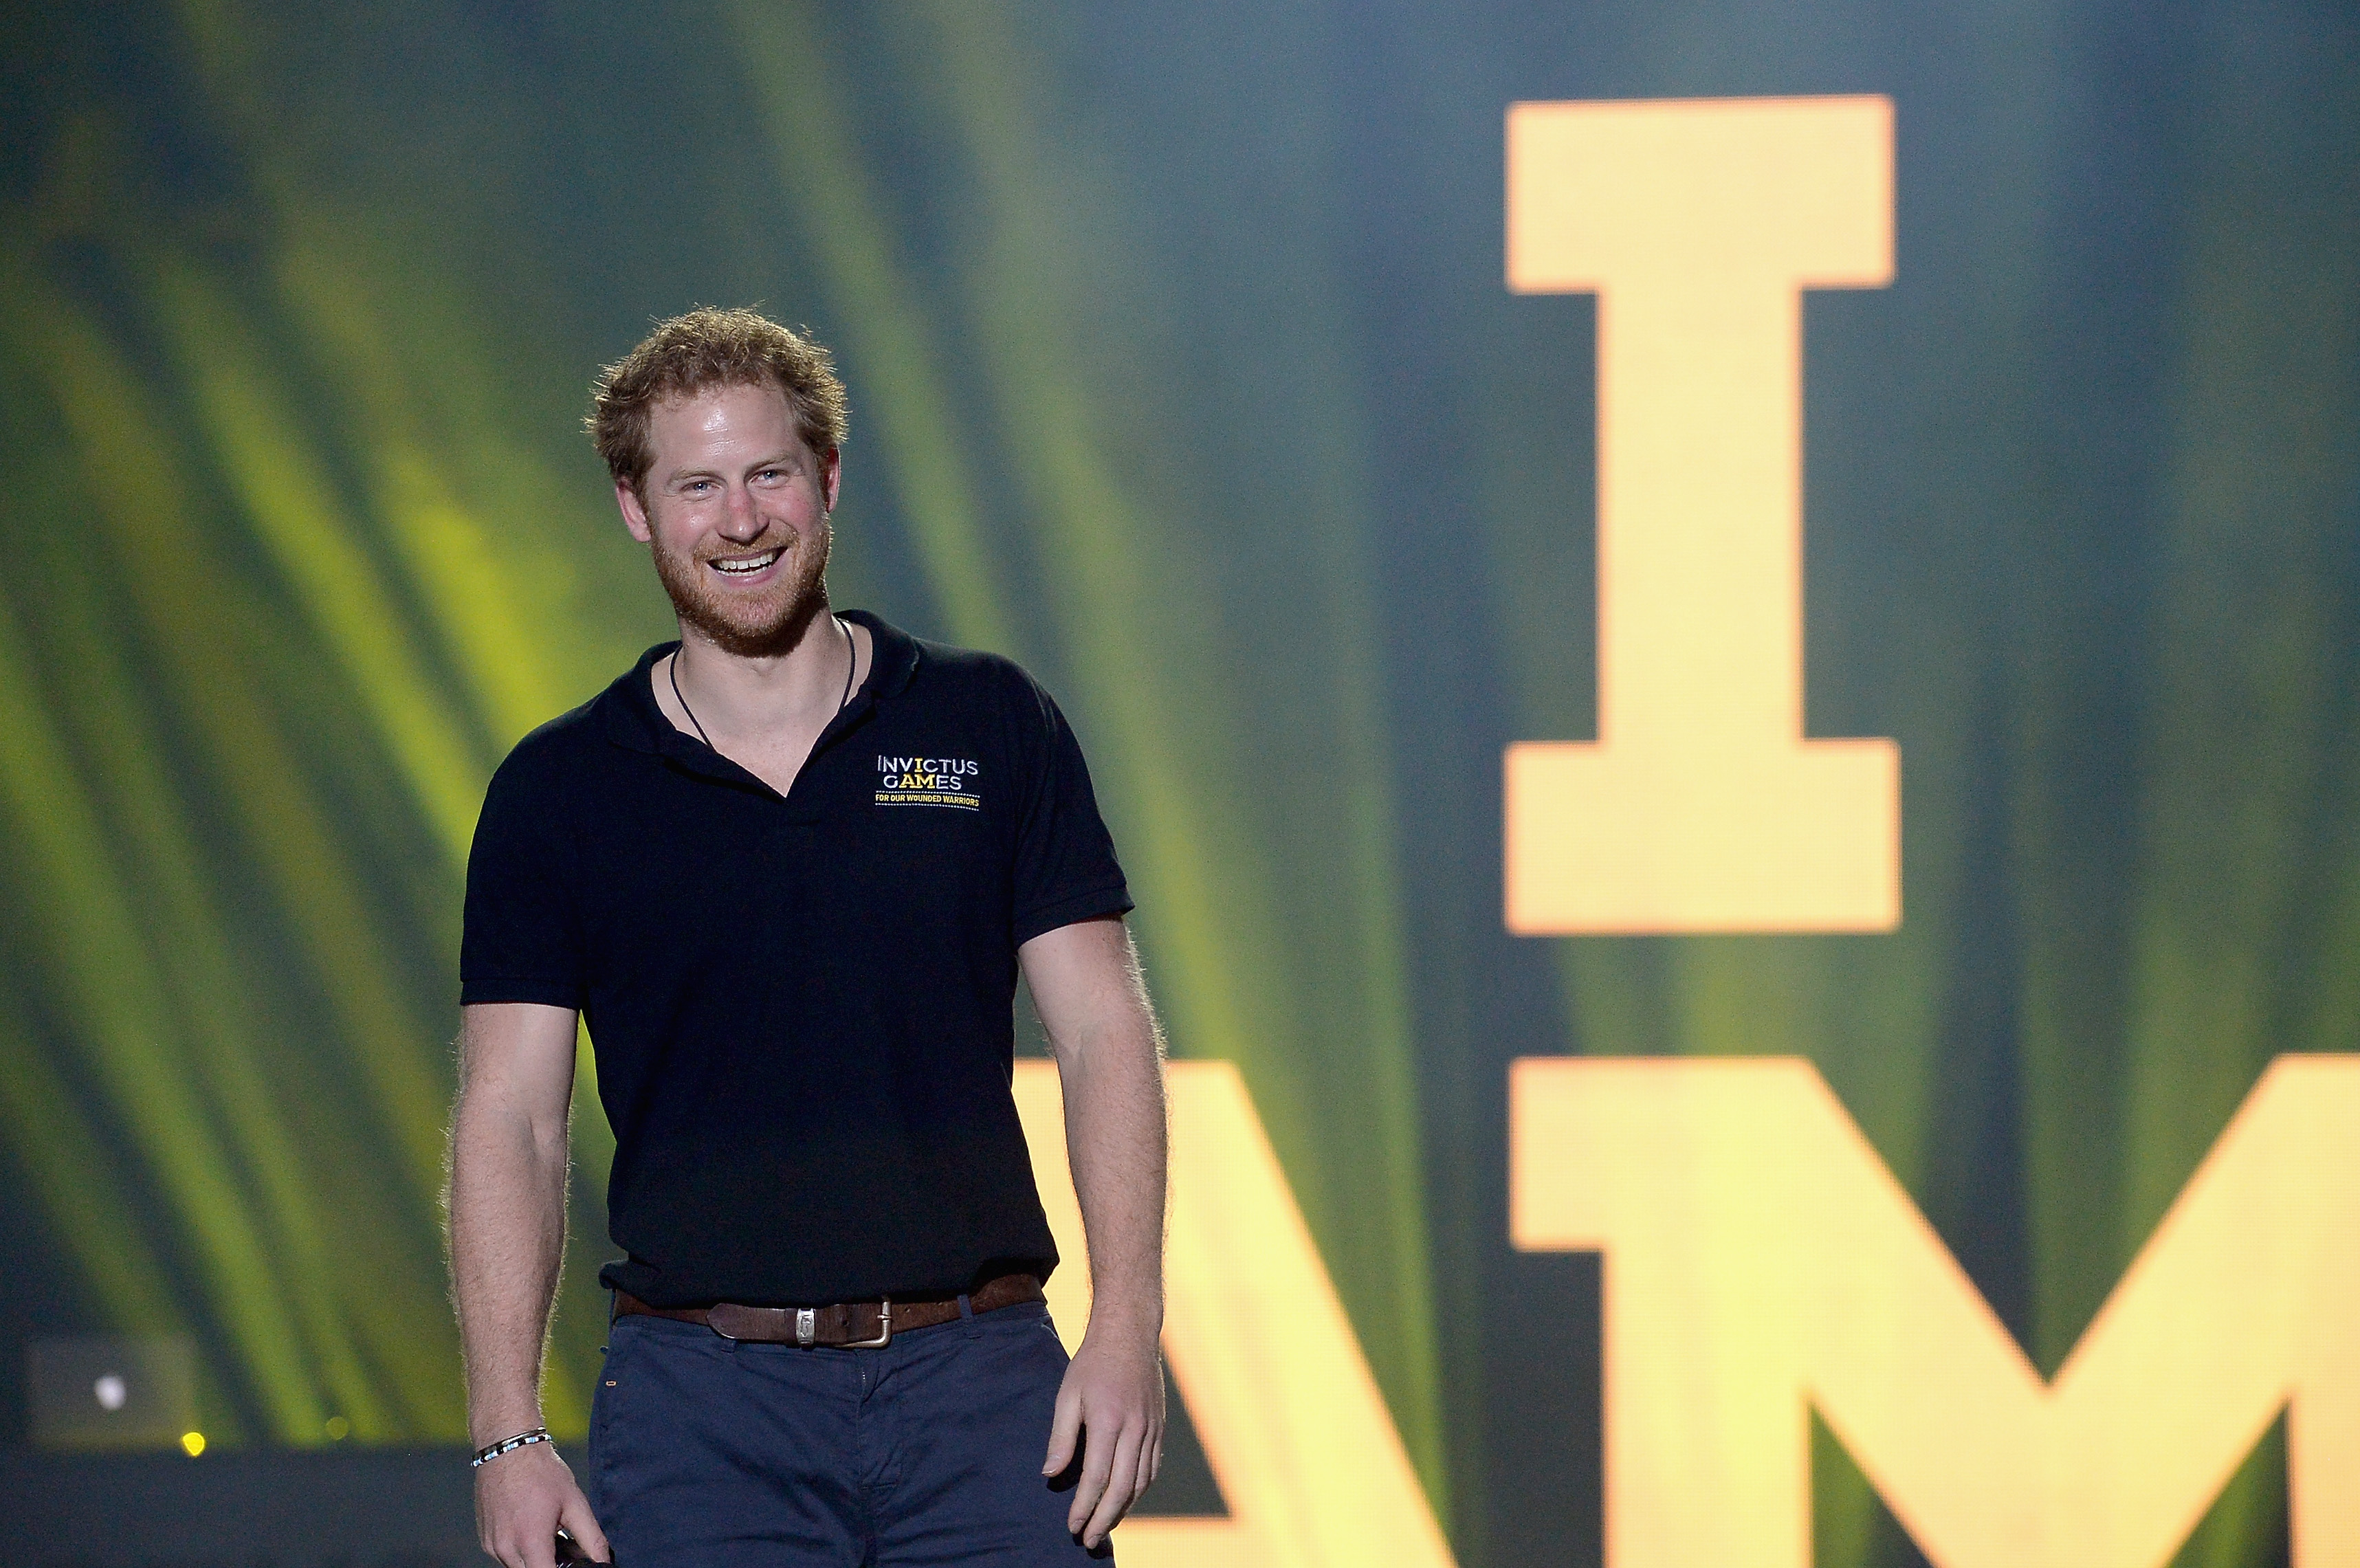 Prince Harry closing remarks during the Invictus Games, May 12, 2016 in Lake Buena Vista, Fla.